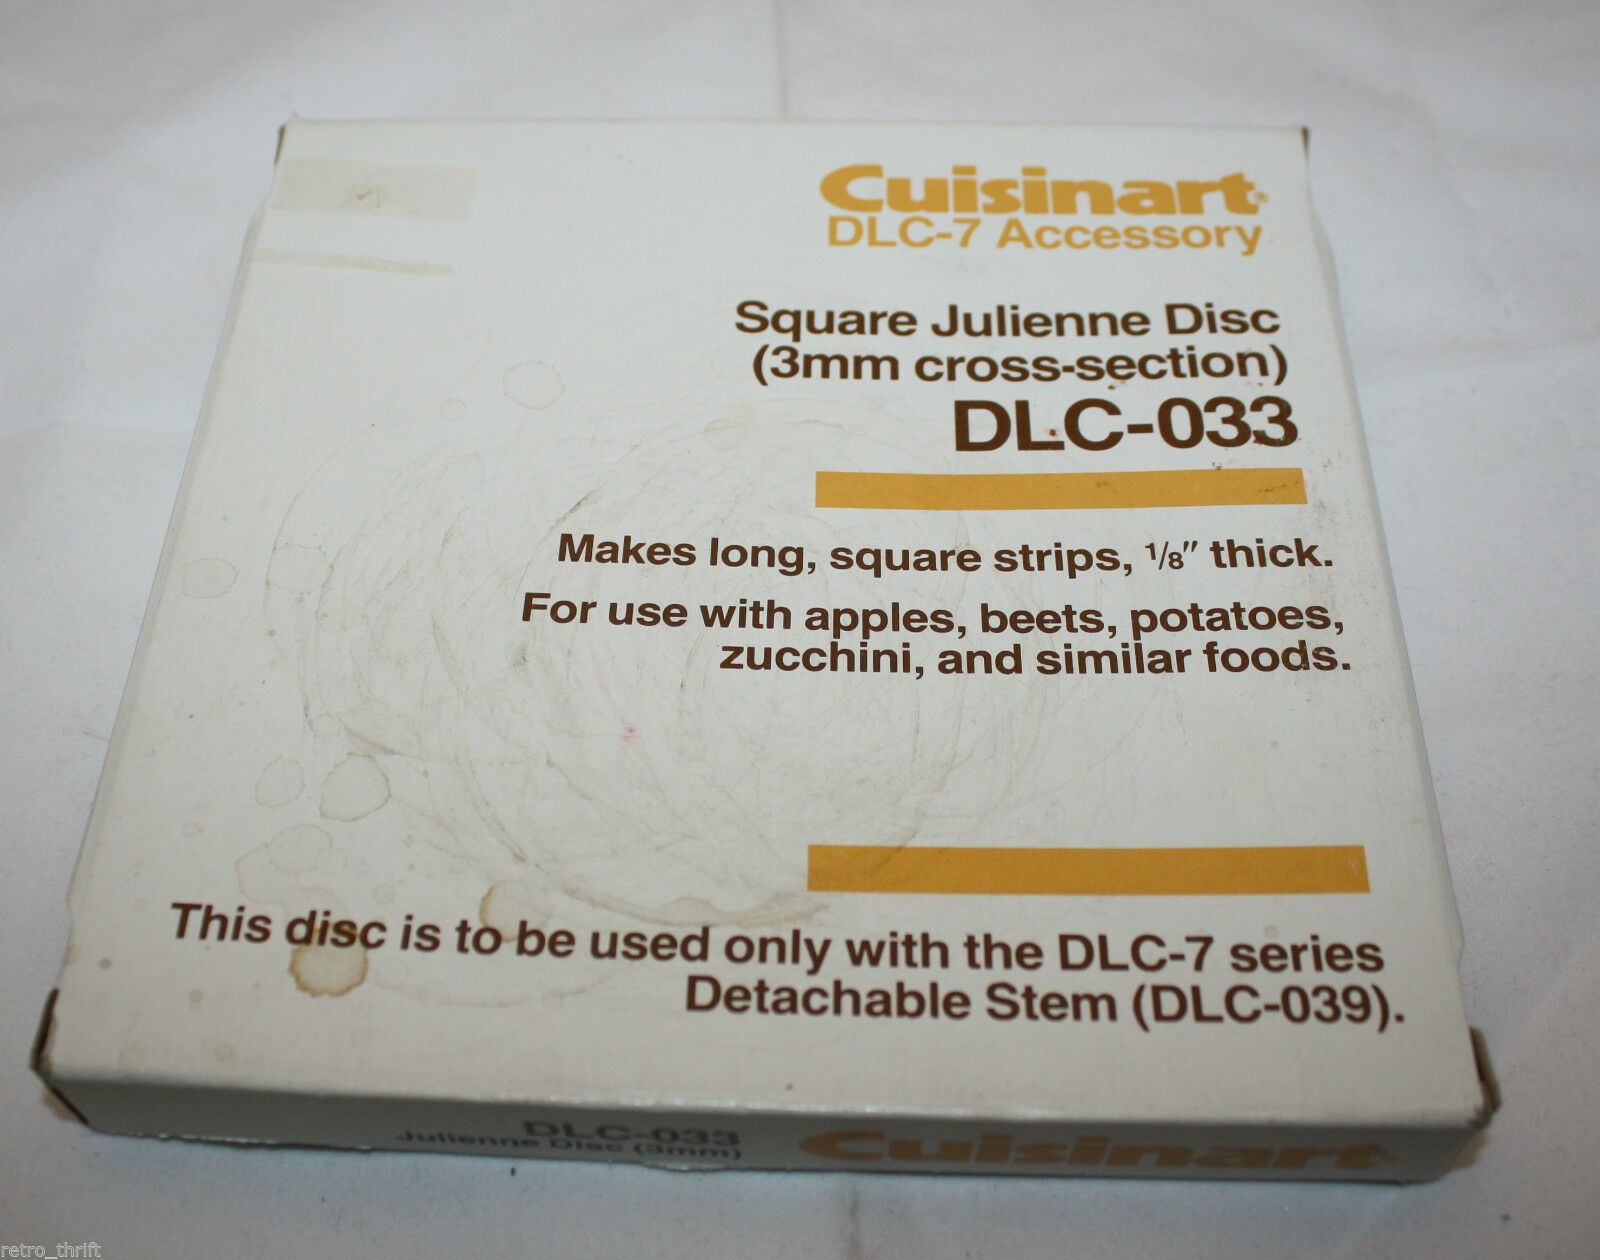 Primary image for Cuisinart Food processors DLC-7 Accessory DLC-033 Julienne Disc Replacement